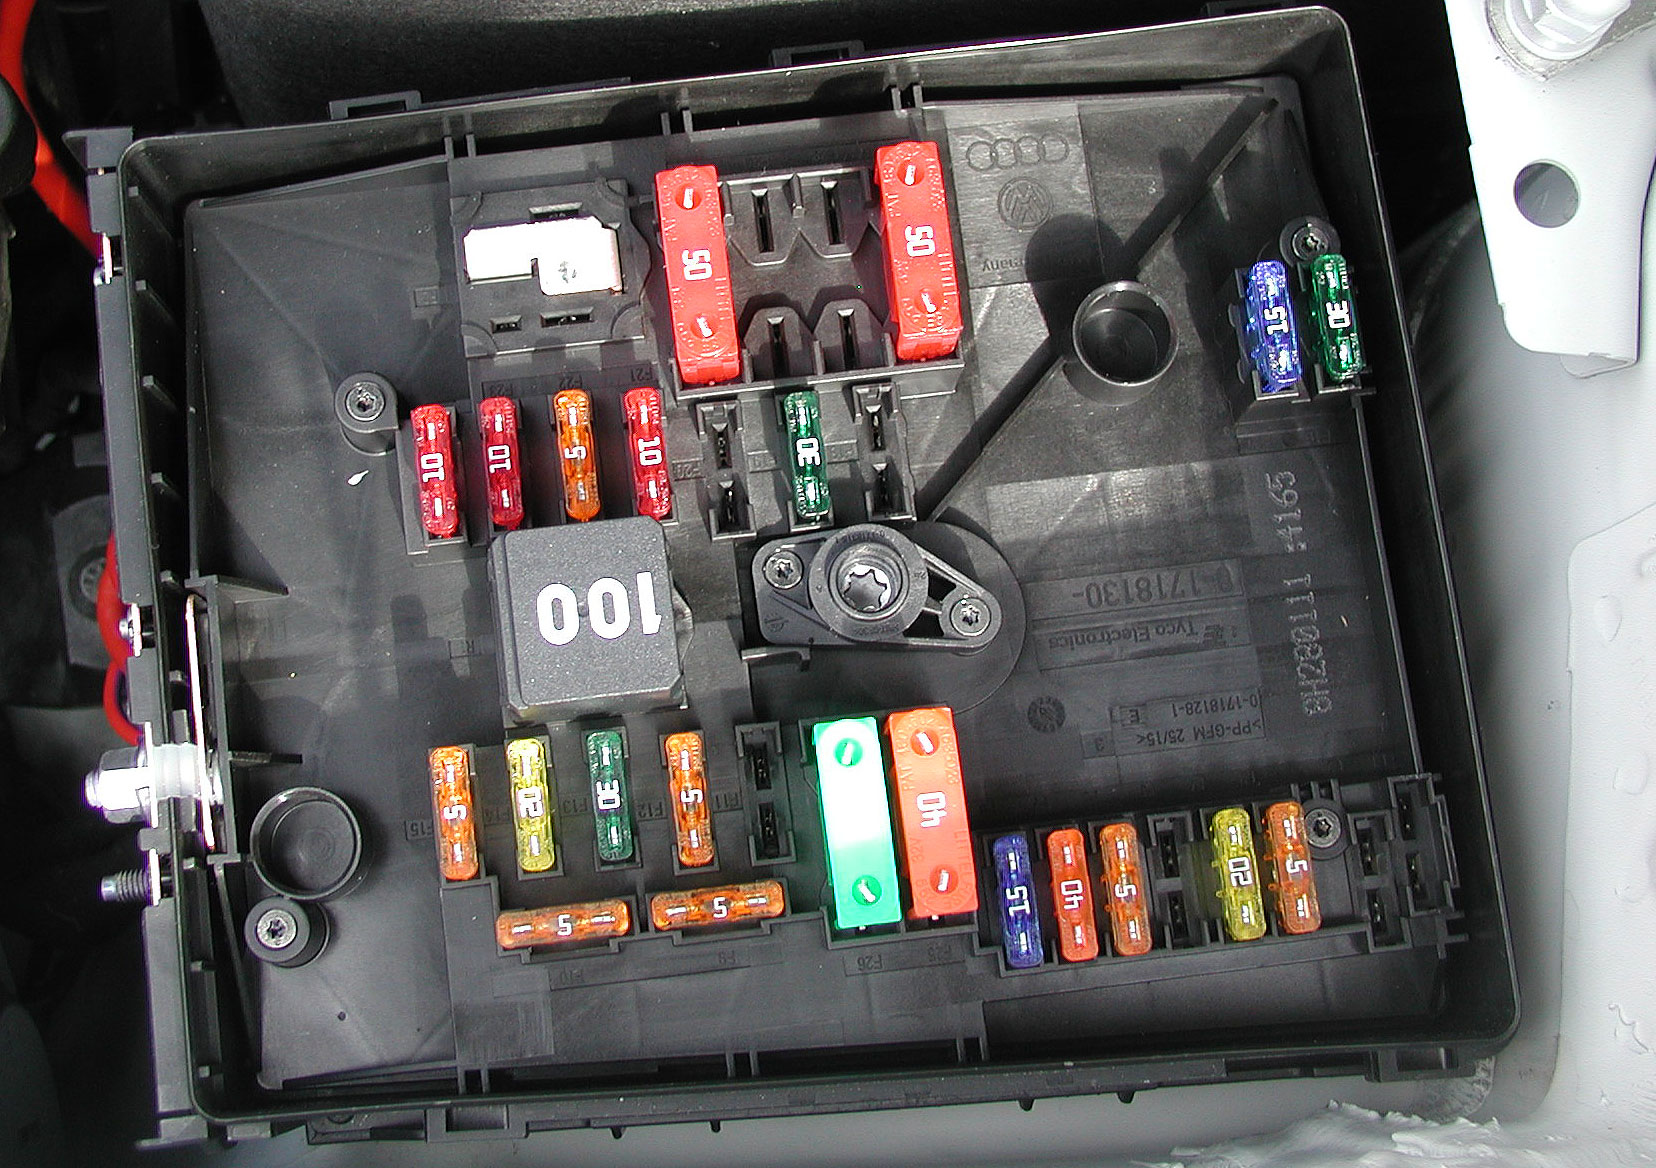 engineFuses2 golf mkv 1 9 tdi rcd 310 battery drain the volkswagen club of 2010 jetta 2.5 fuse box diagram at couponss.co